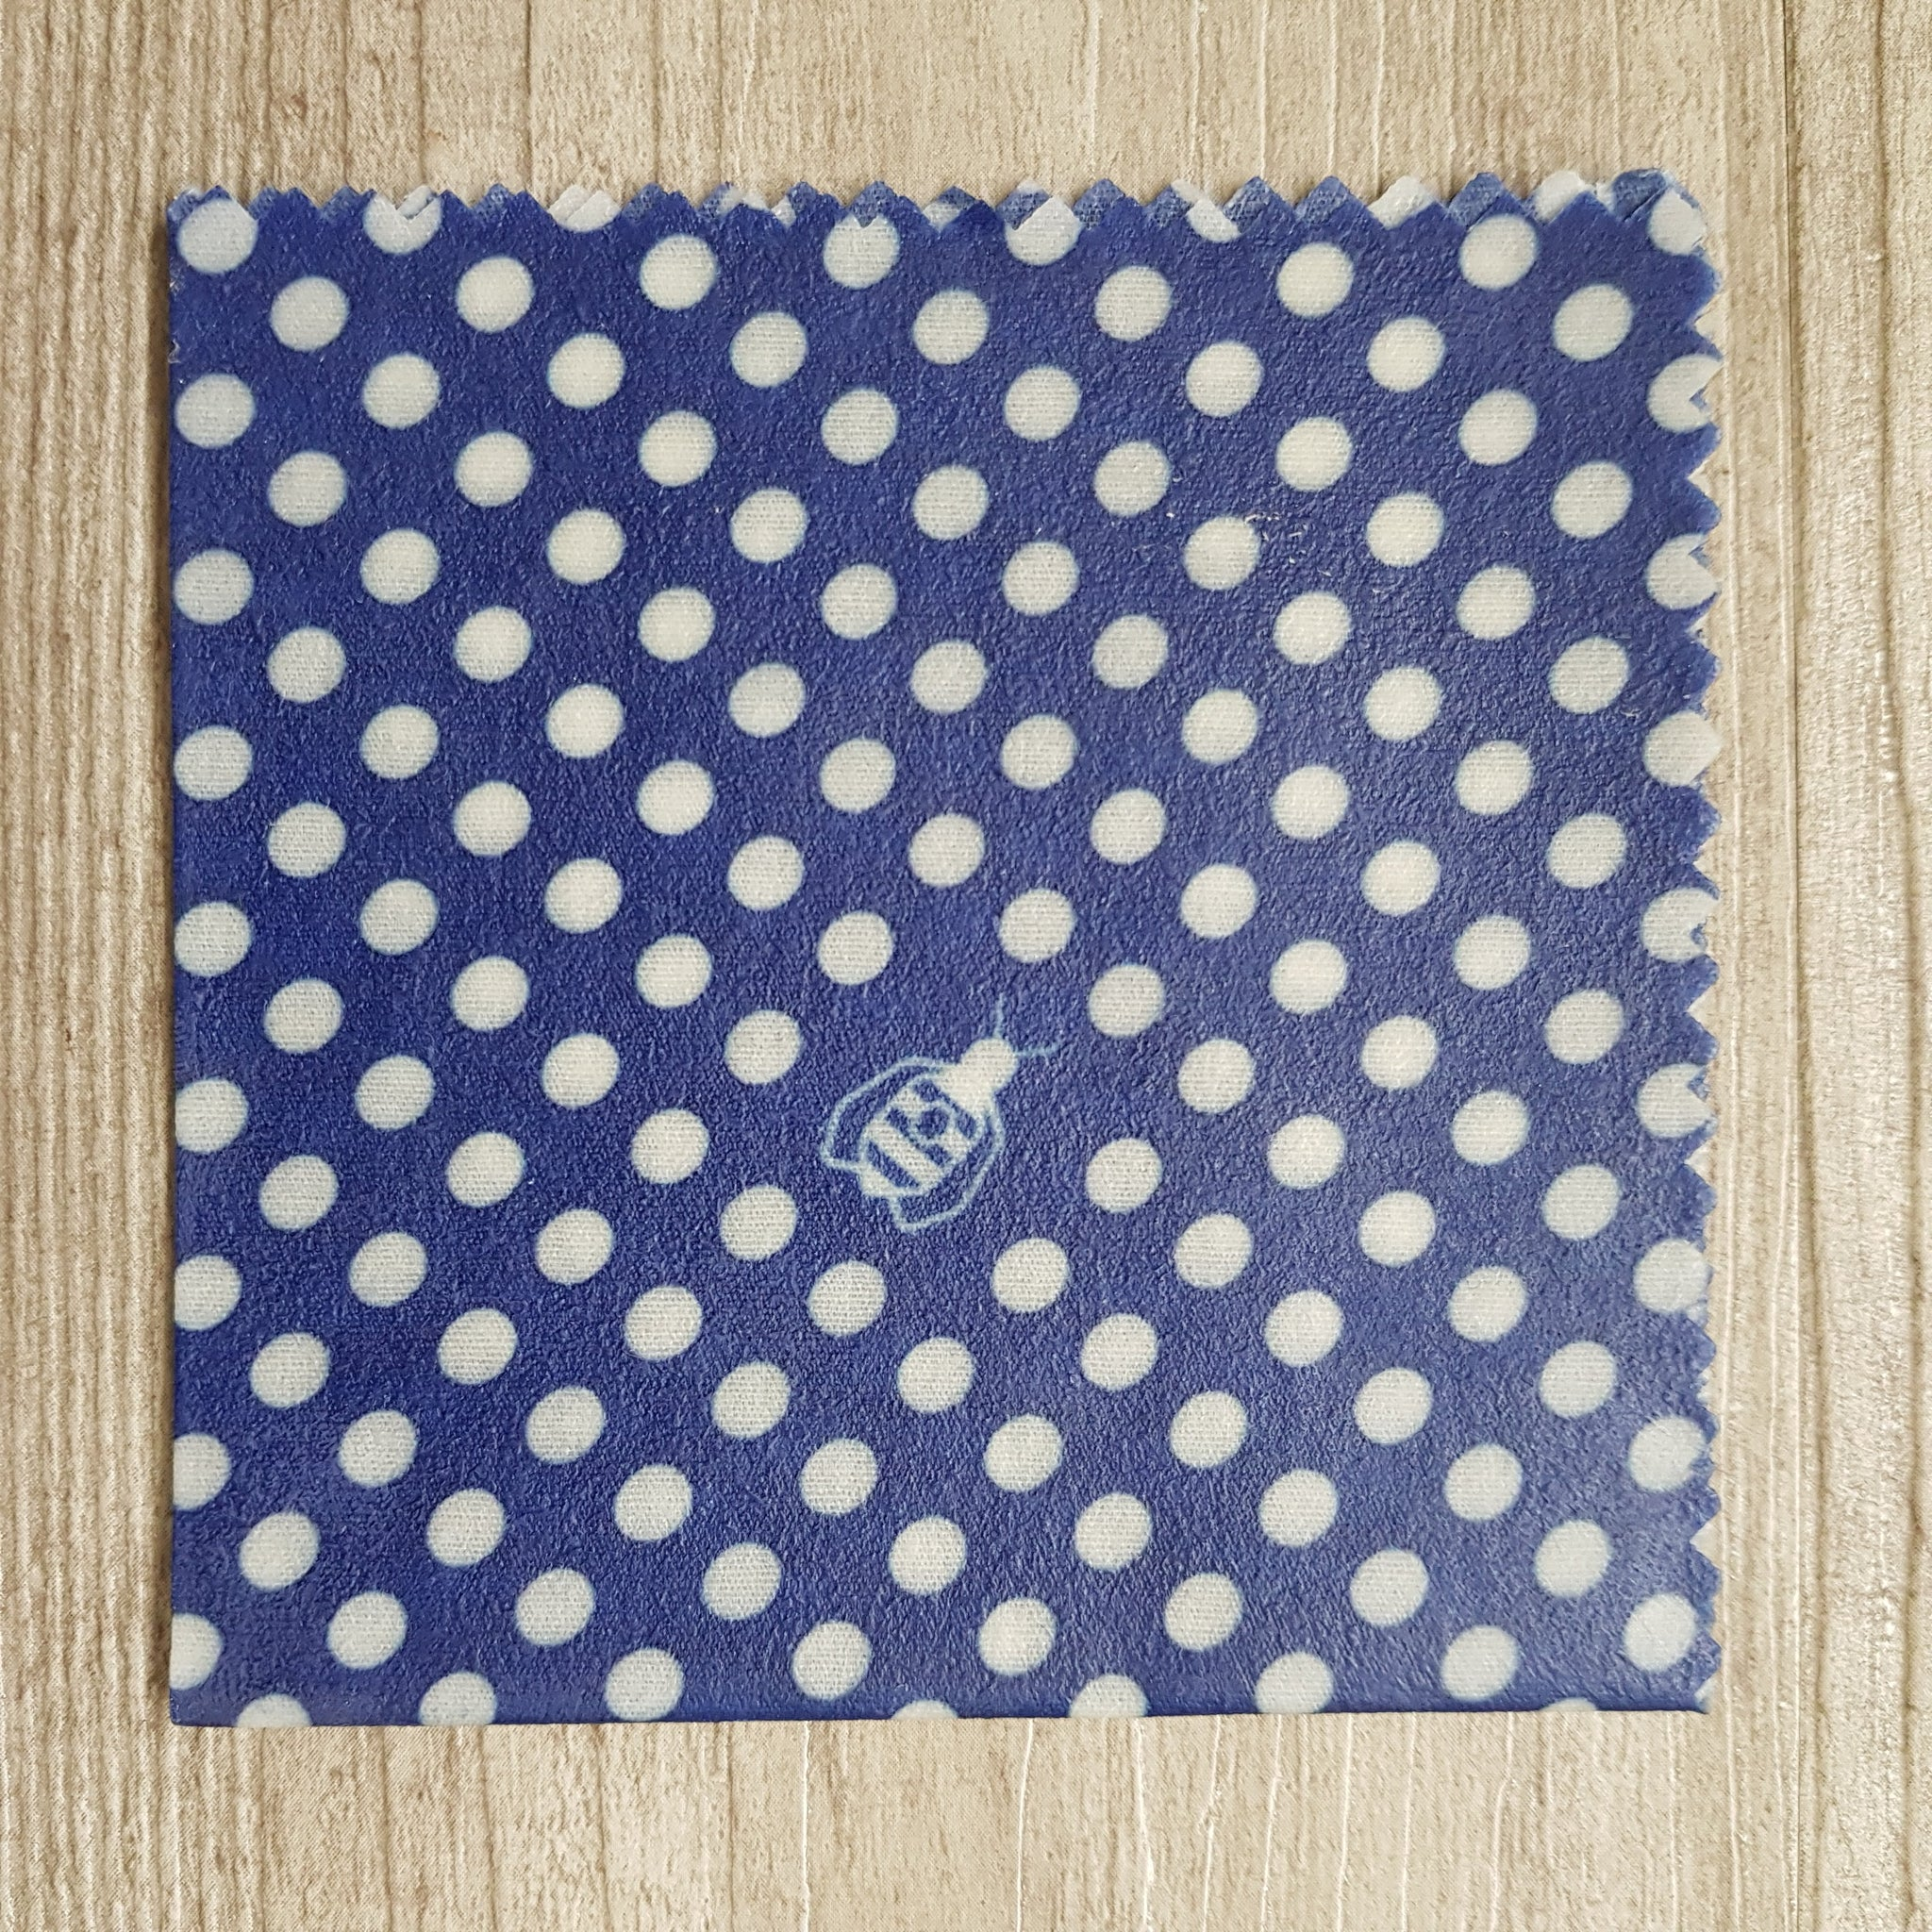 Small beeswax wrap - Blue polka dots